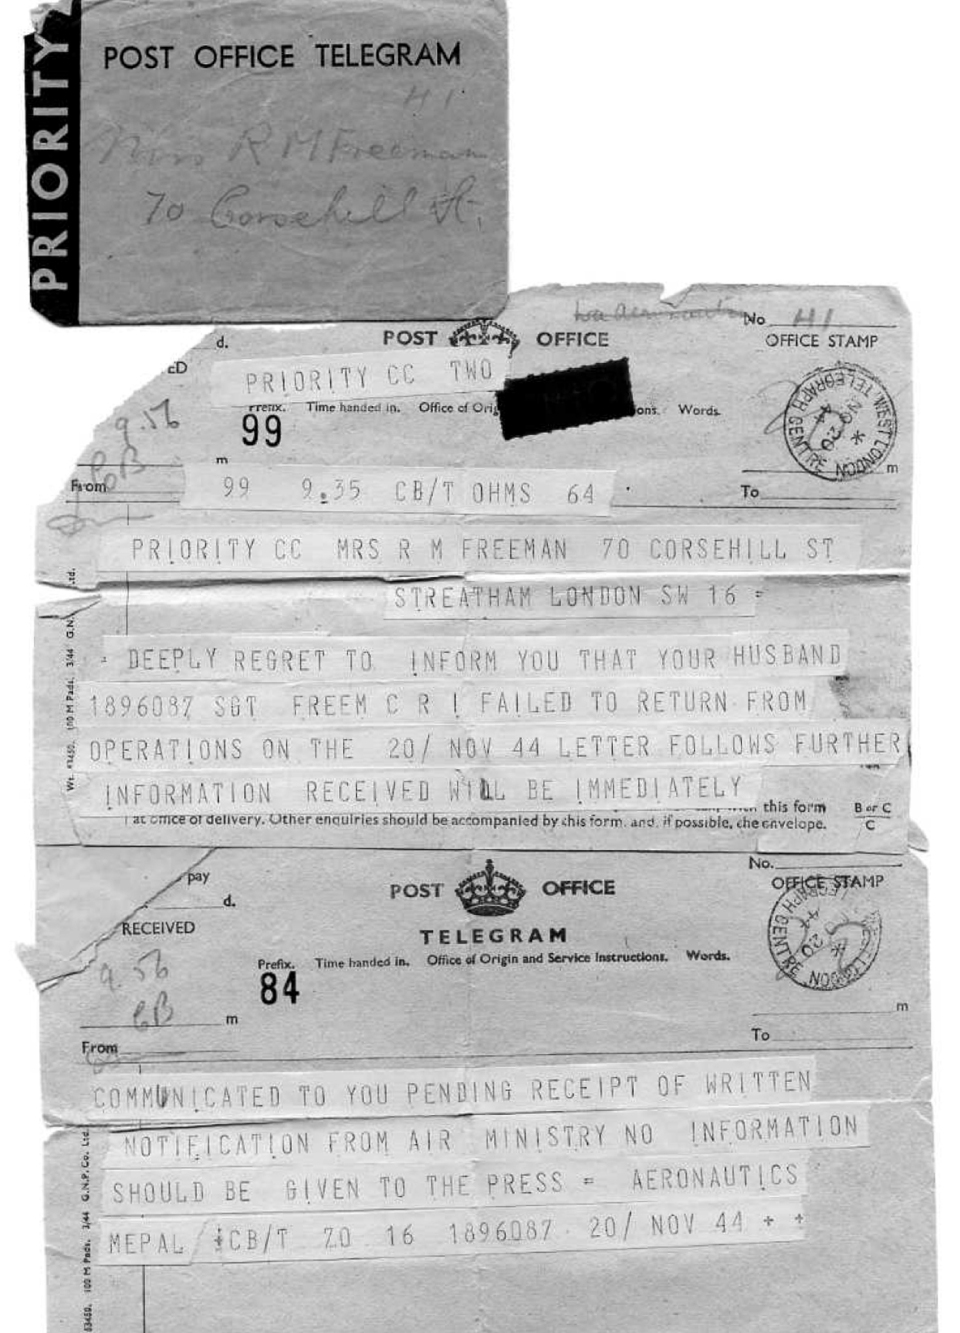 1 Telegram, 20 Nov 1944